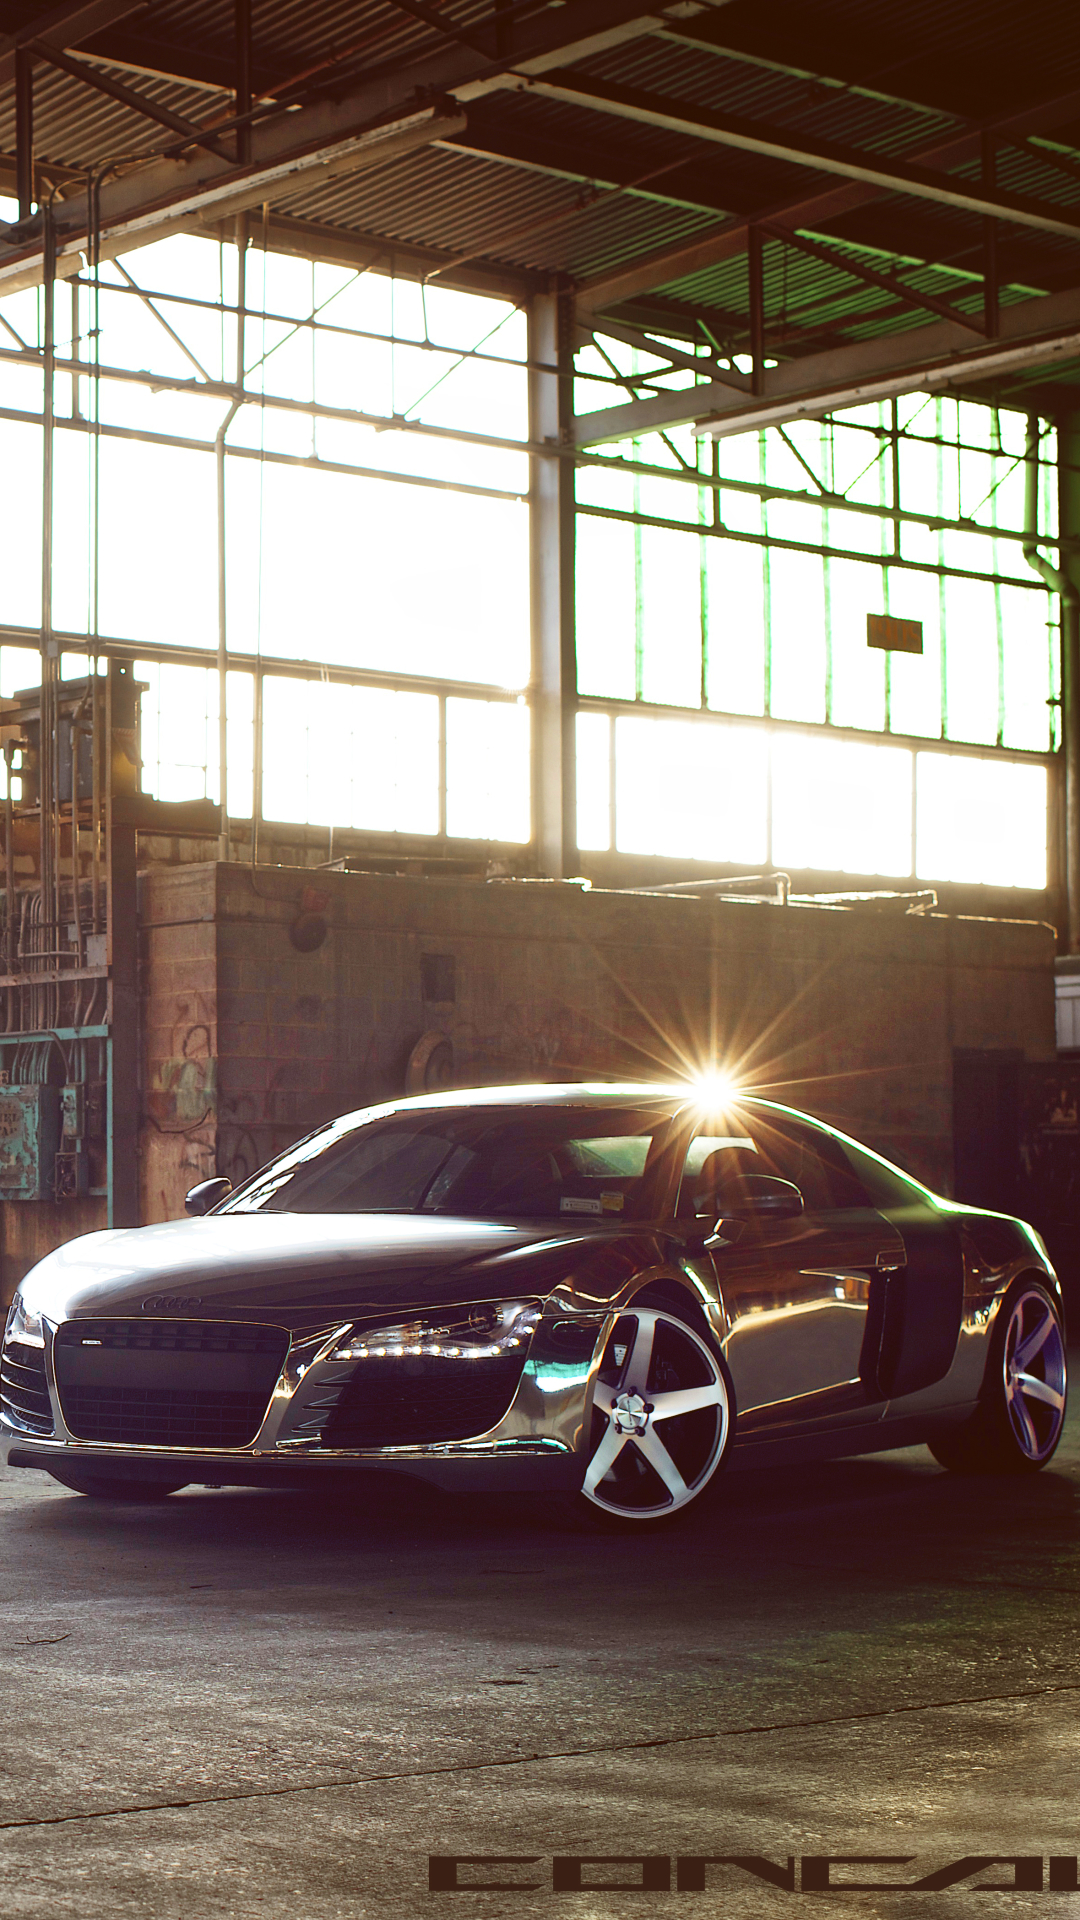 20 Audi R8 Apple Iphone 6 750x1334 Wallpapers Mobile Abyss